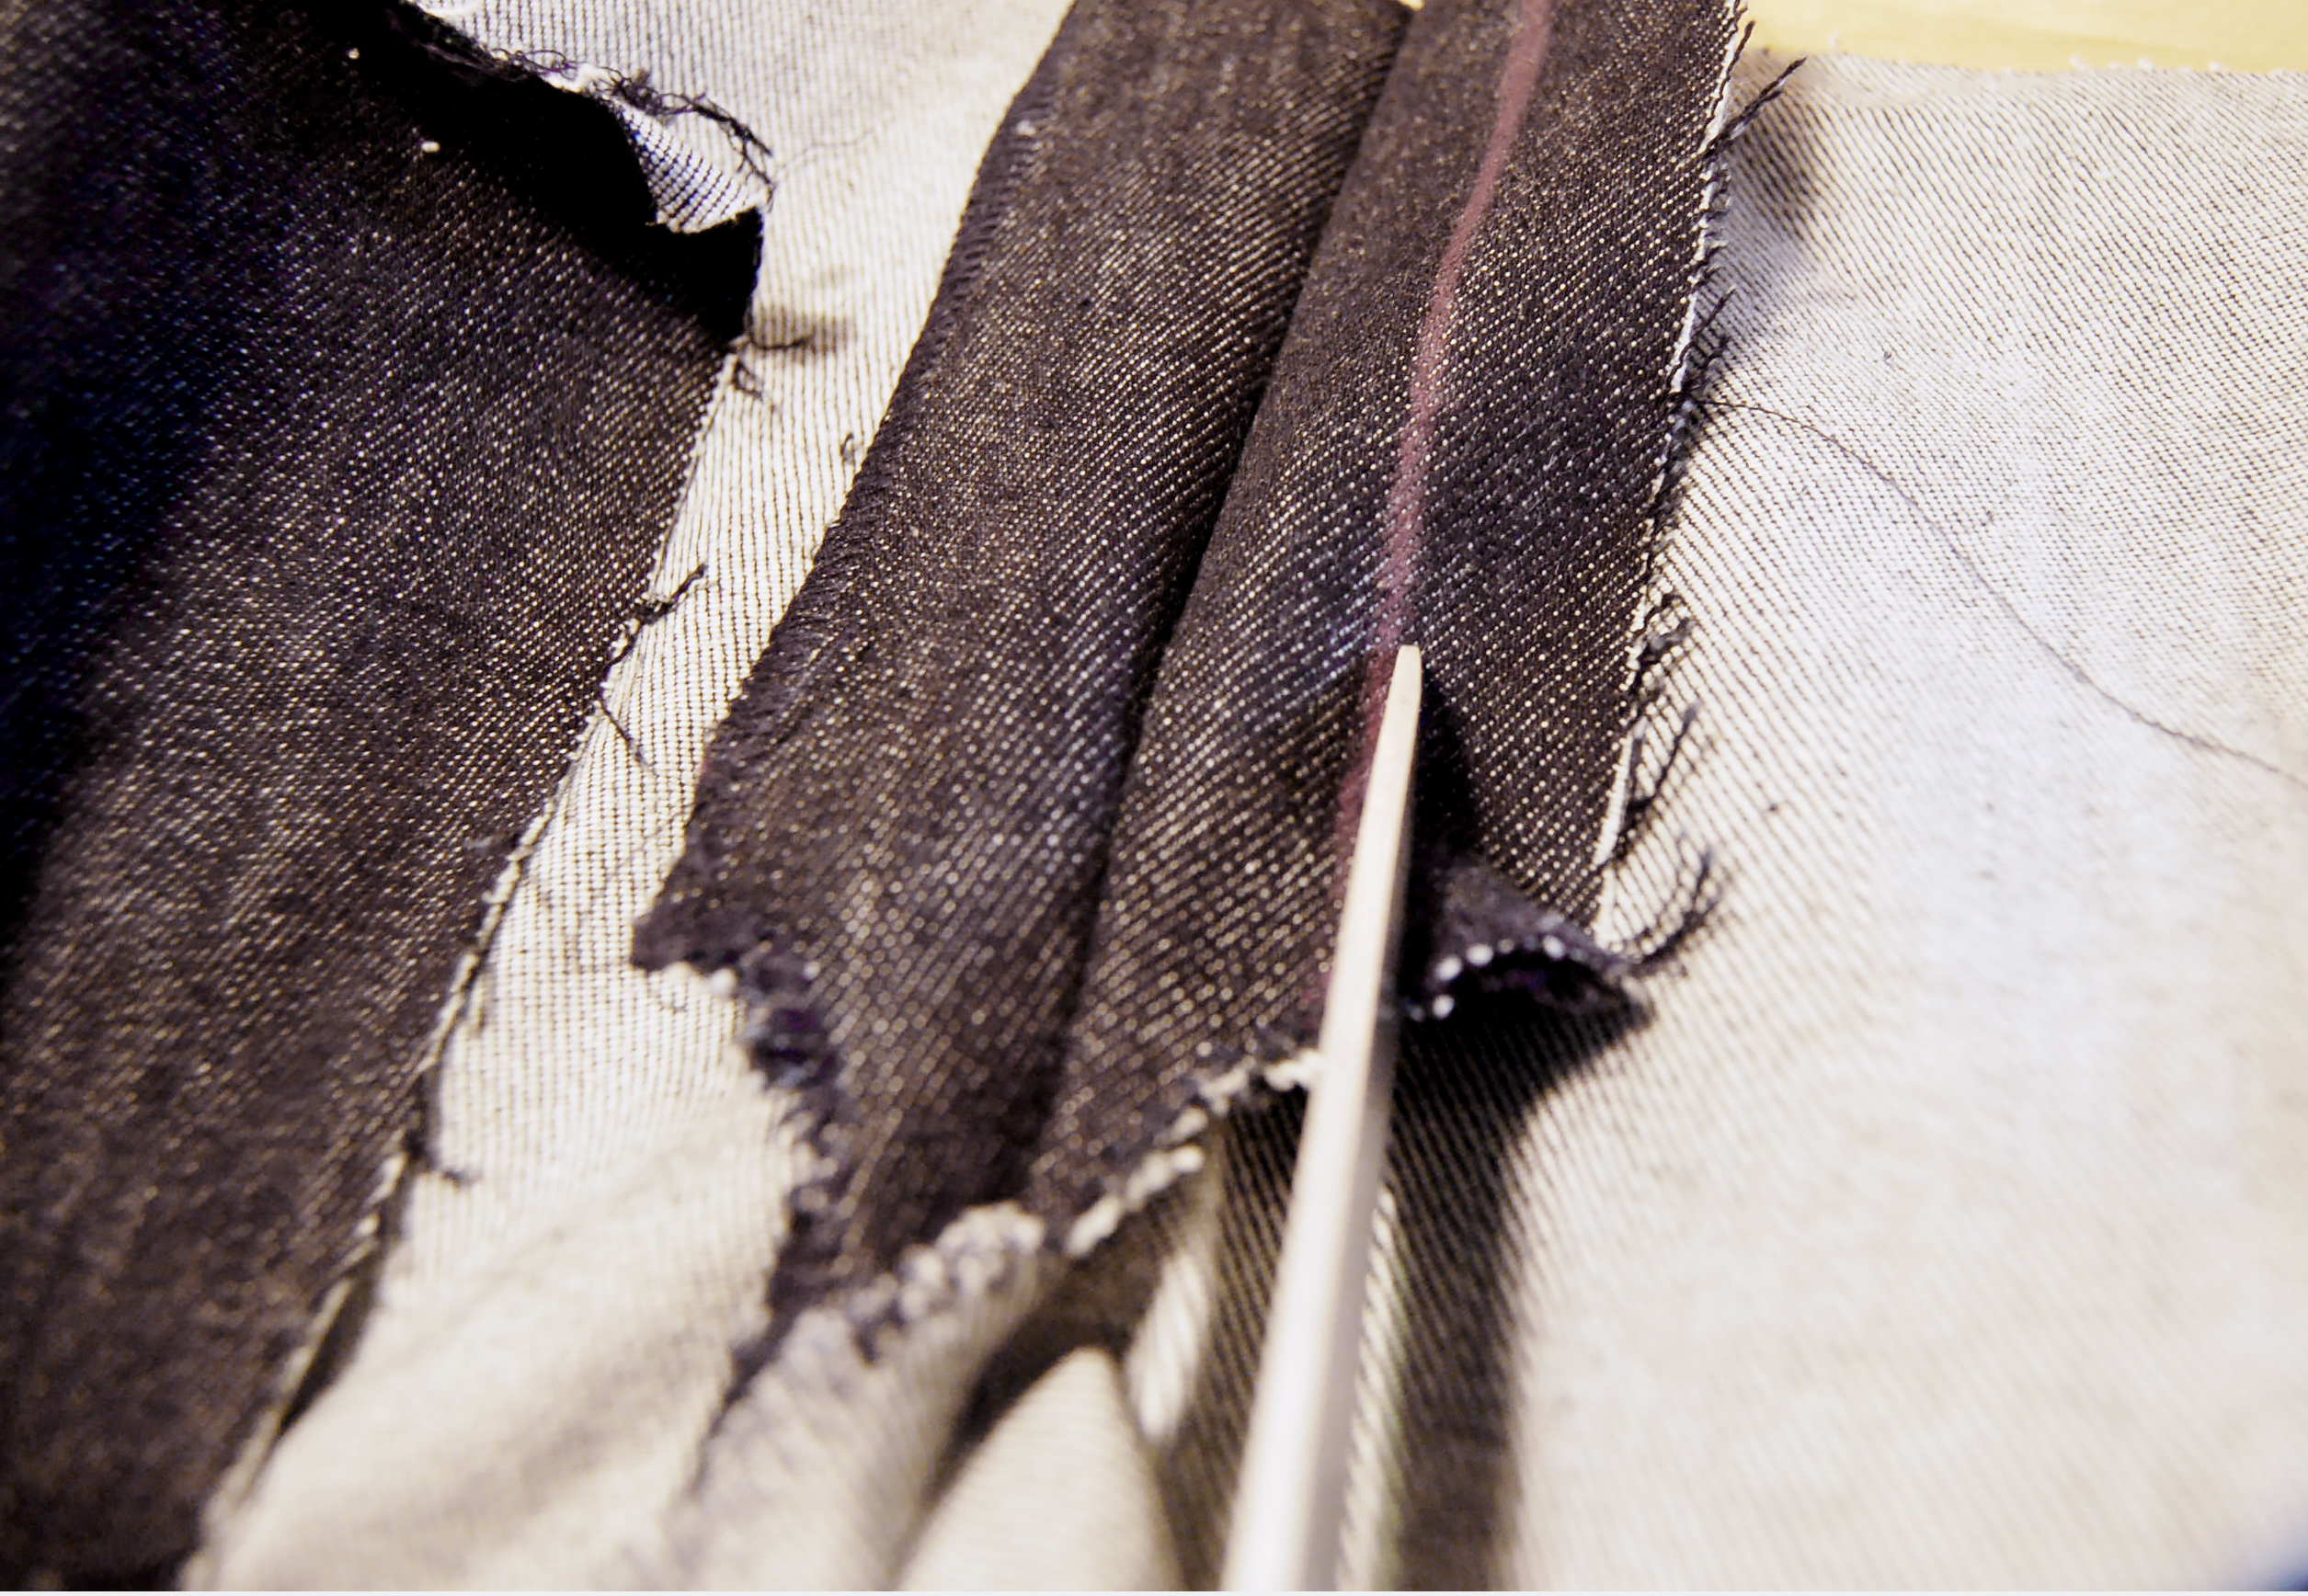 How to make jeans zipper with fly shield